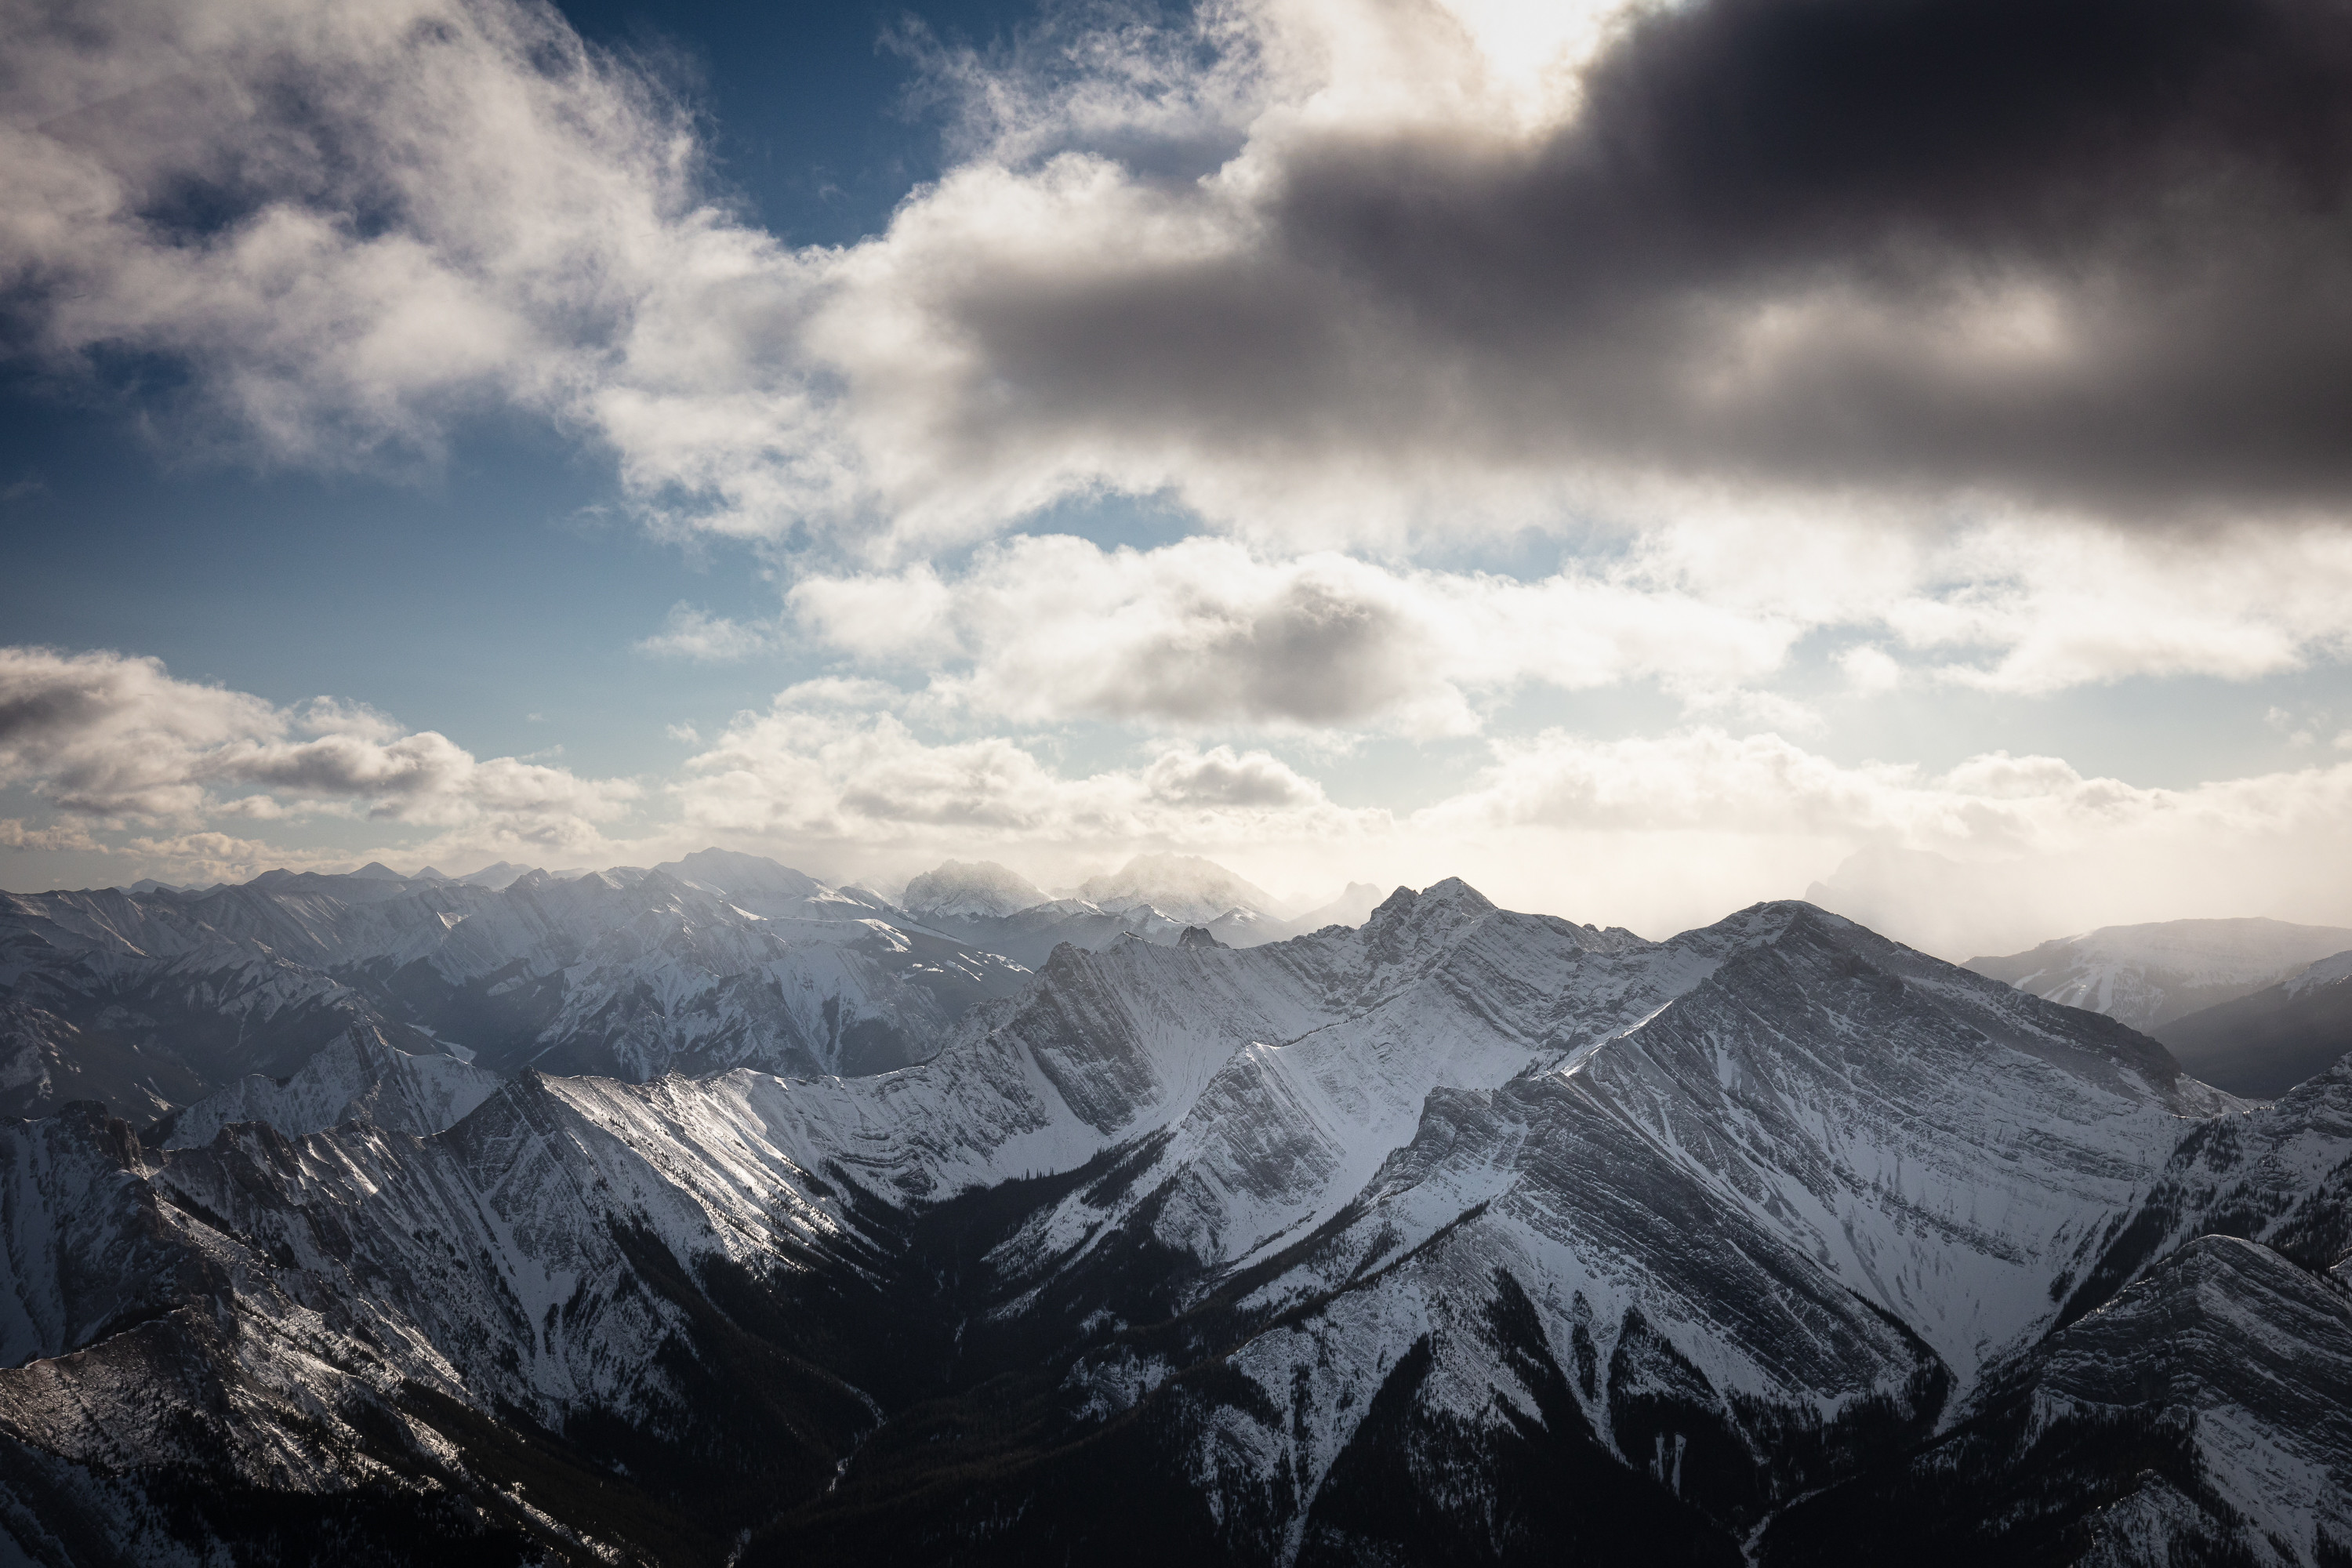 Shot during a very bumpy ride in the Mooney, the sun pokes through the clouds hanging over the eastern edge of the Canadian Rockies